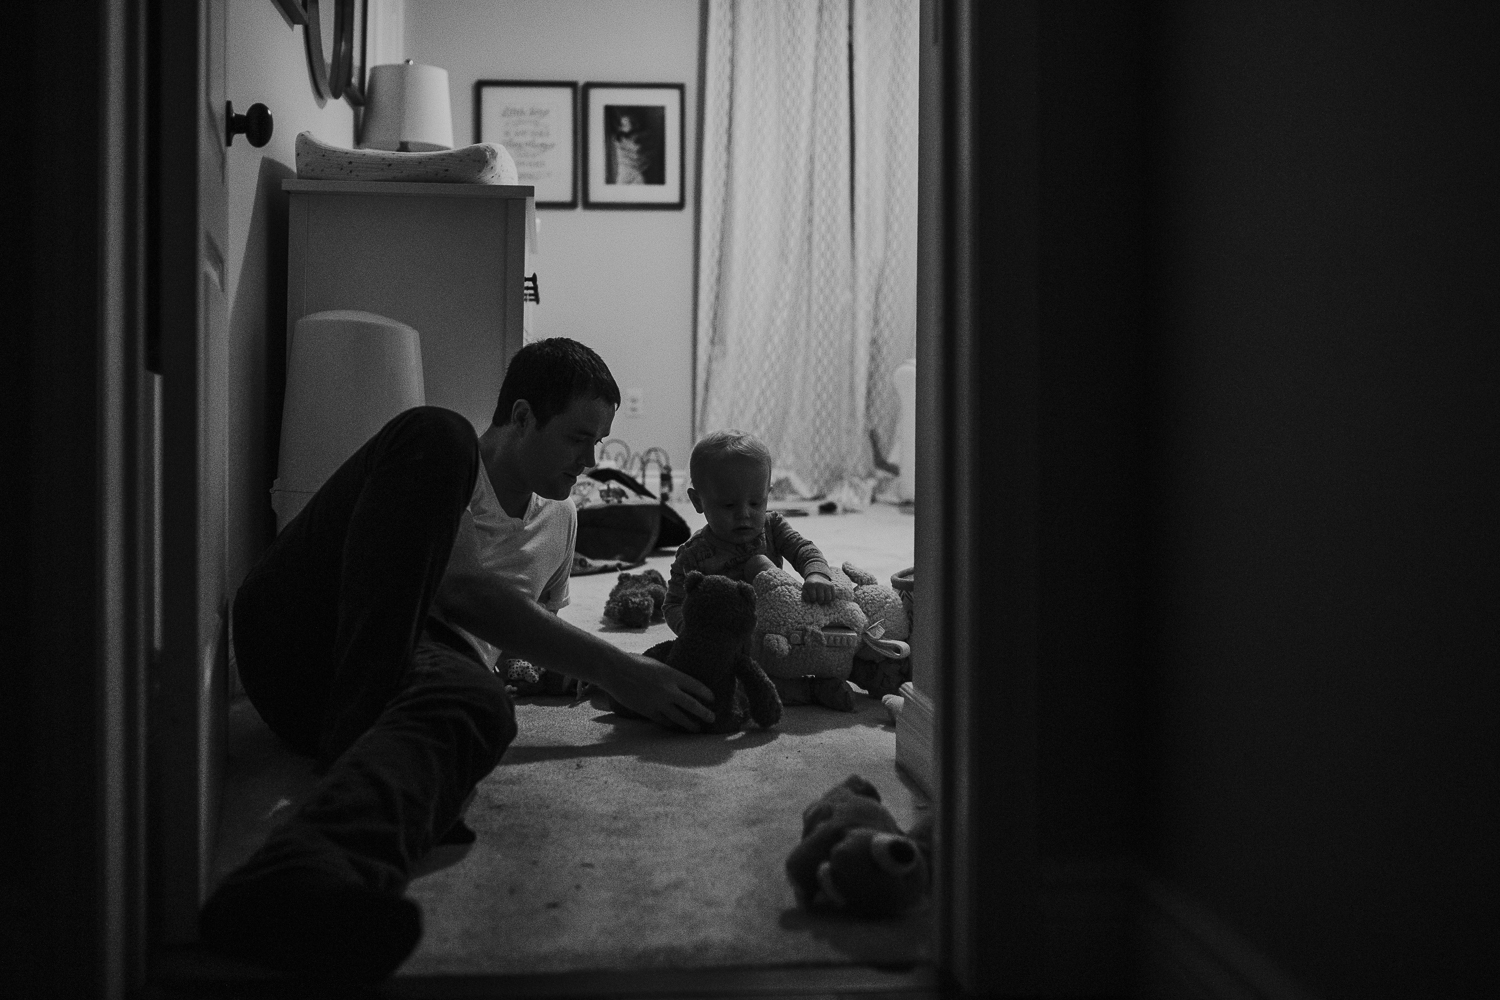 Father and 1 year old baby boy playing in bedroom at night - York Region documentary photography